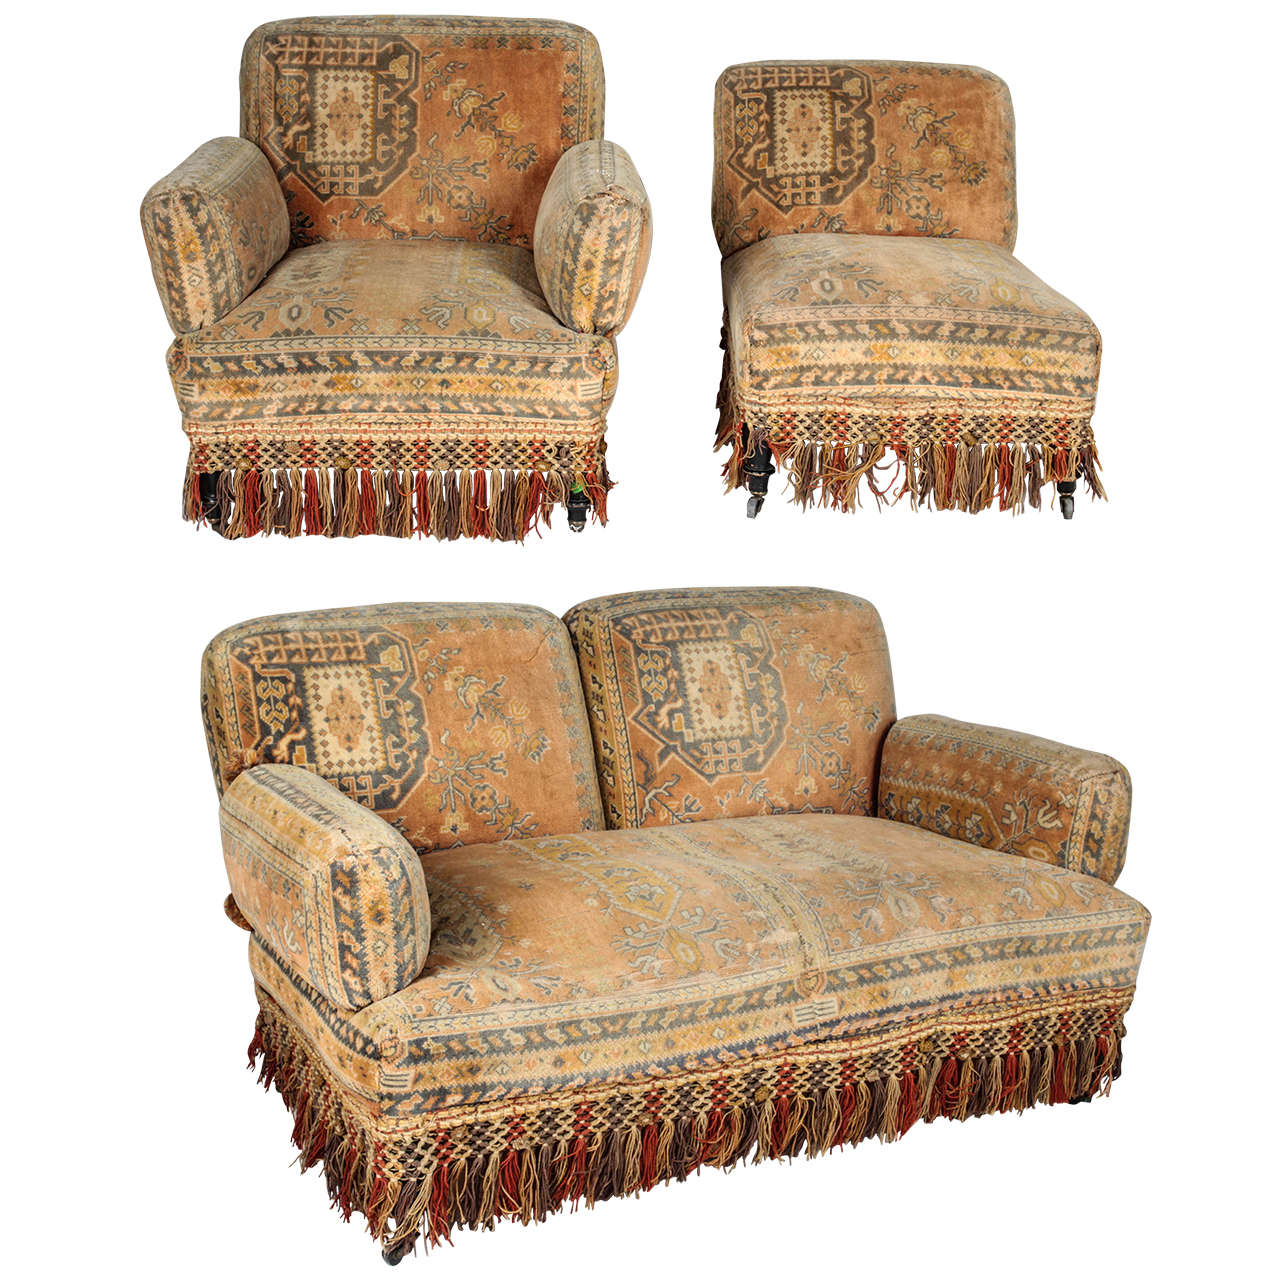 19th Century Au Bon Marché Moorish Tapestry Sofa And Chairs Set 1